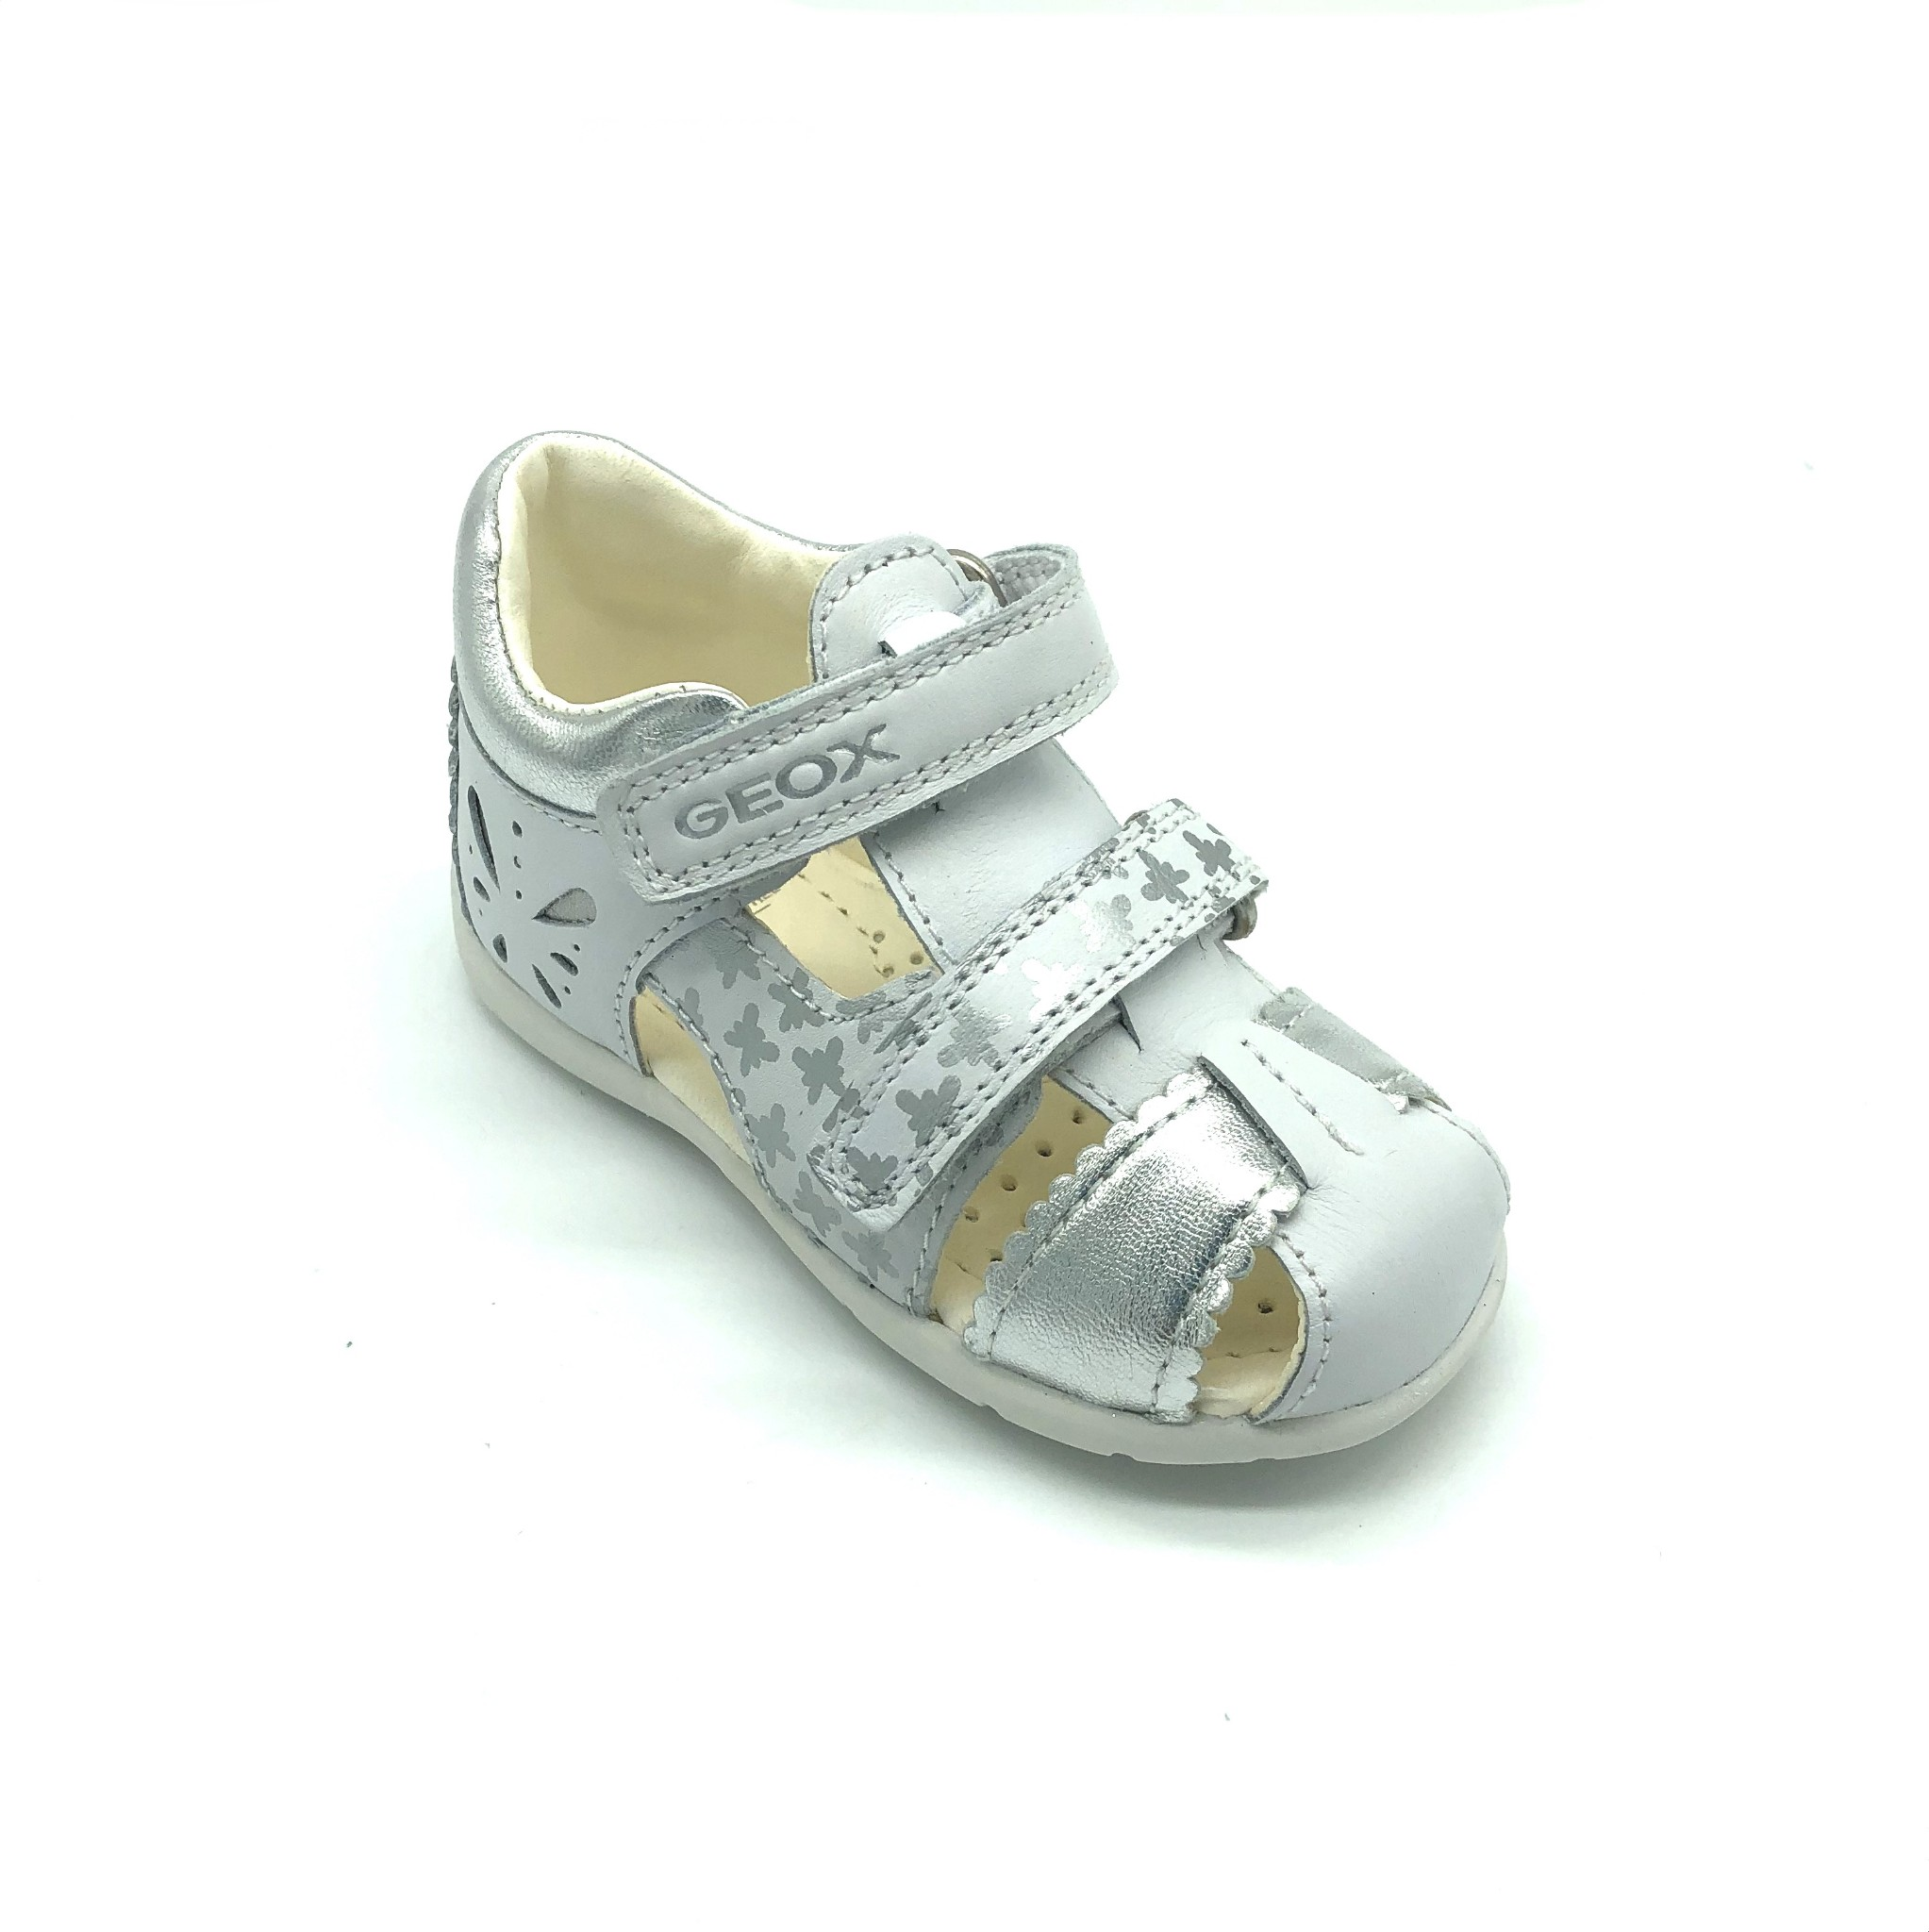 Details about Geox Junior S Karly WhiteSilver Girls Sandal 40% OFF